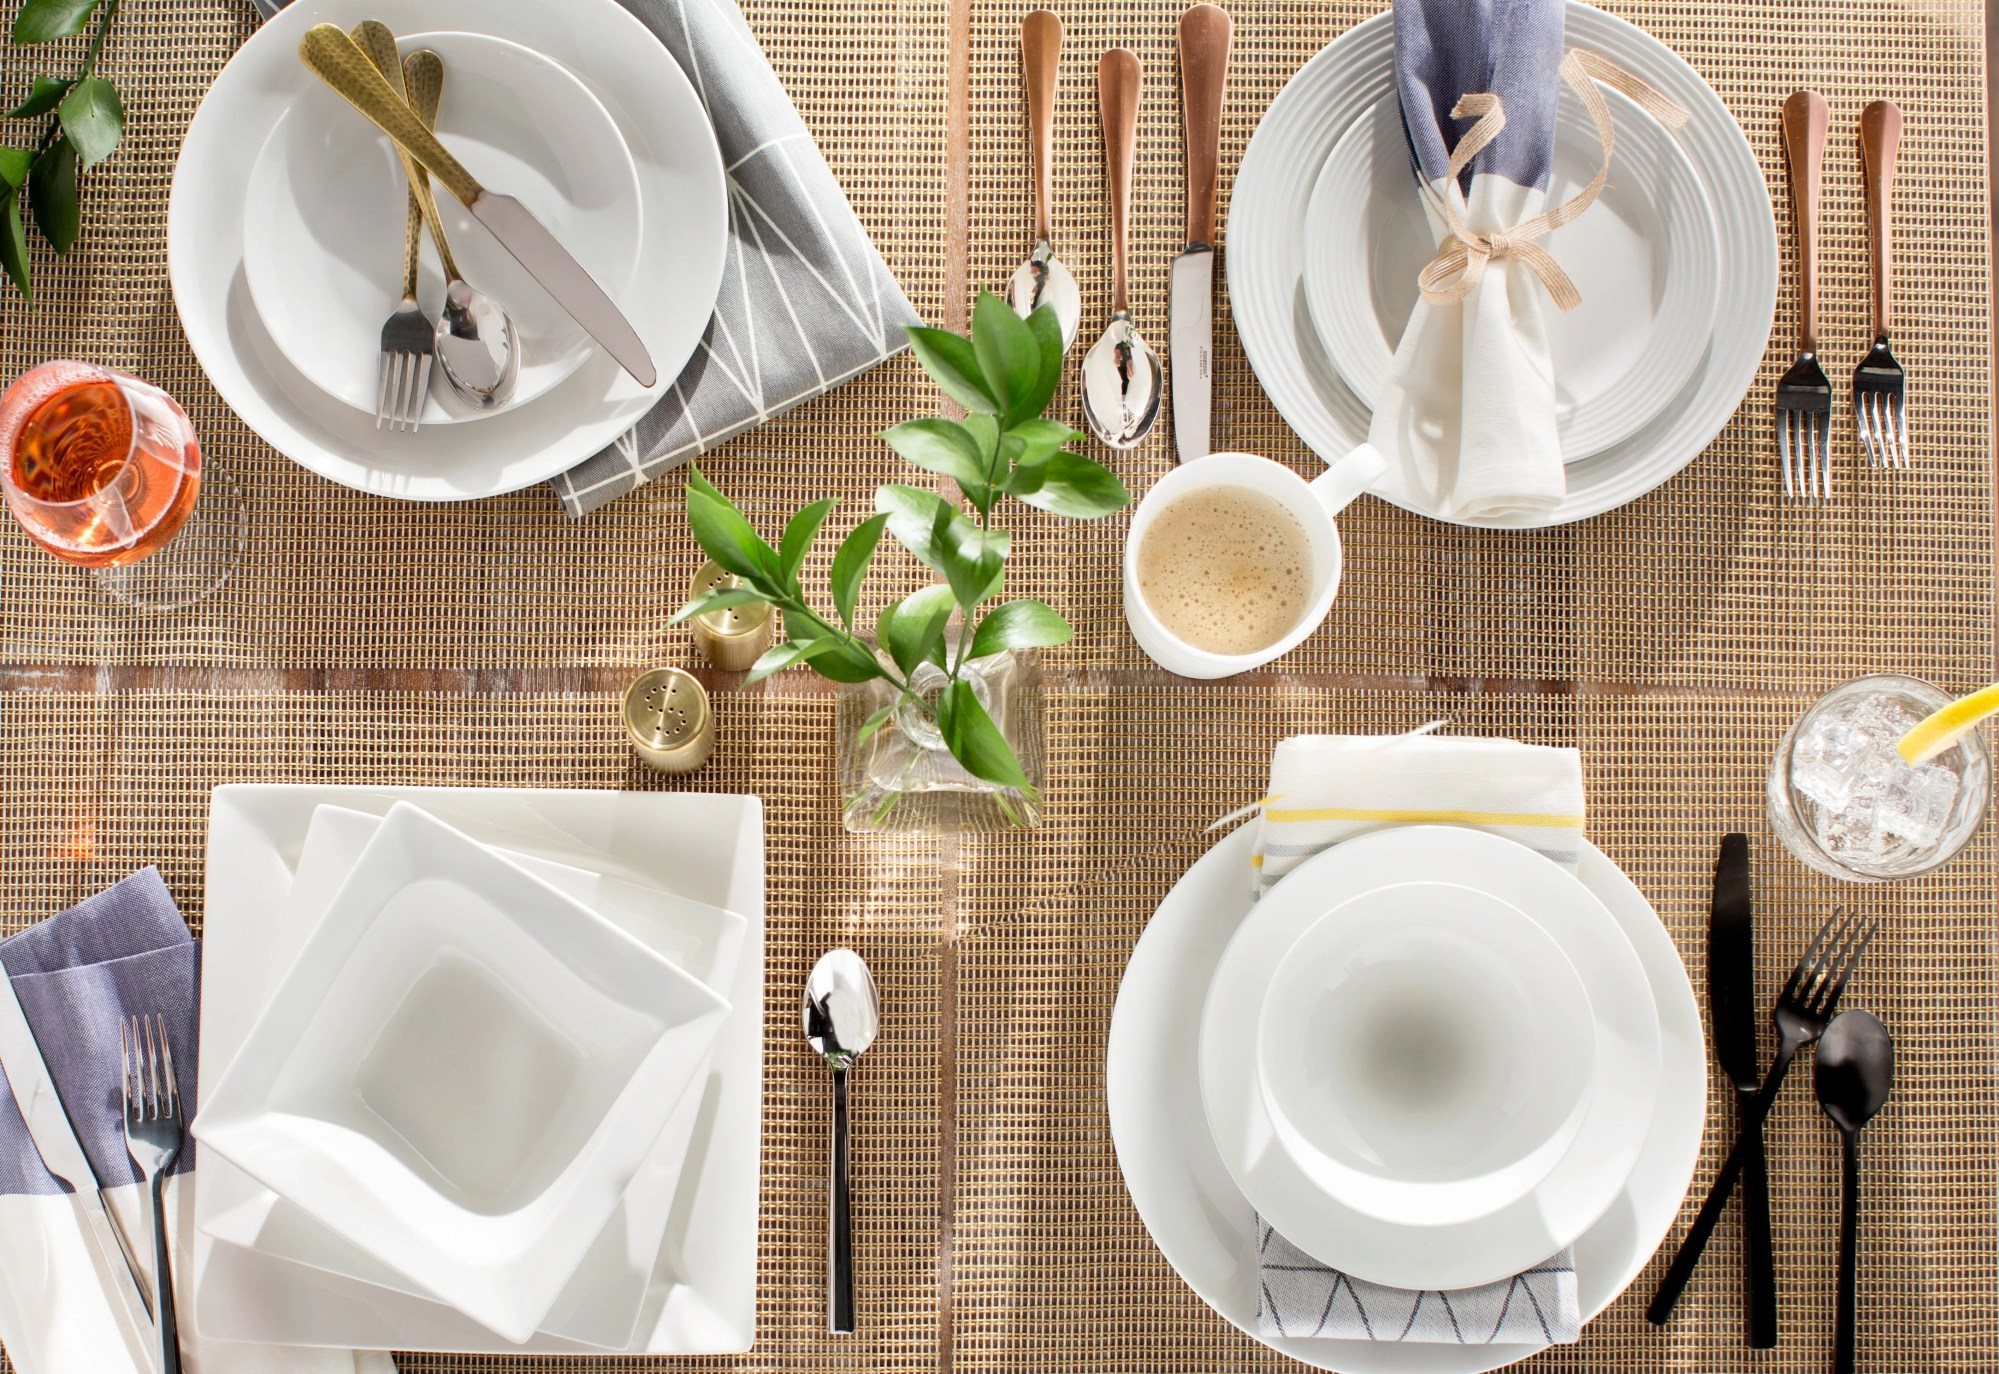 hight resolution of table setting